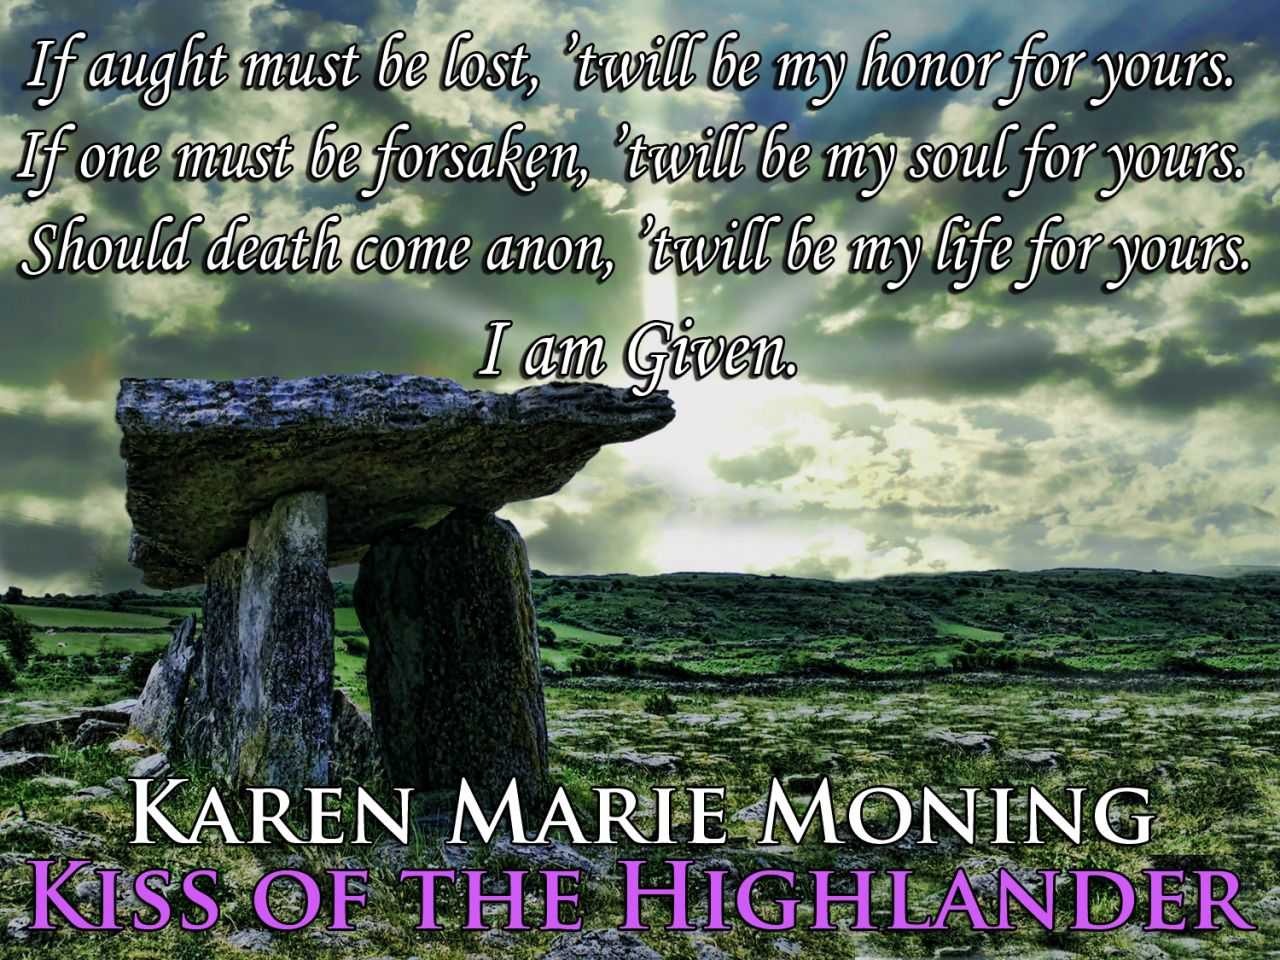 Highlander Quotes If Aught Must Be Lost 'twill Be My Honor For Yoursif One Must